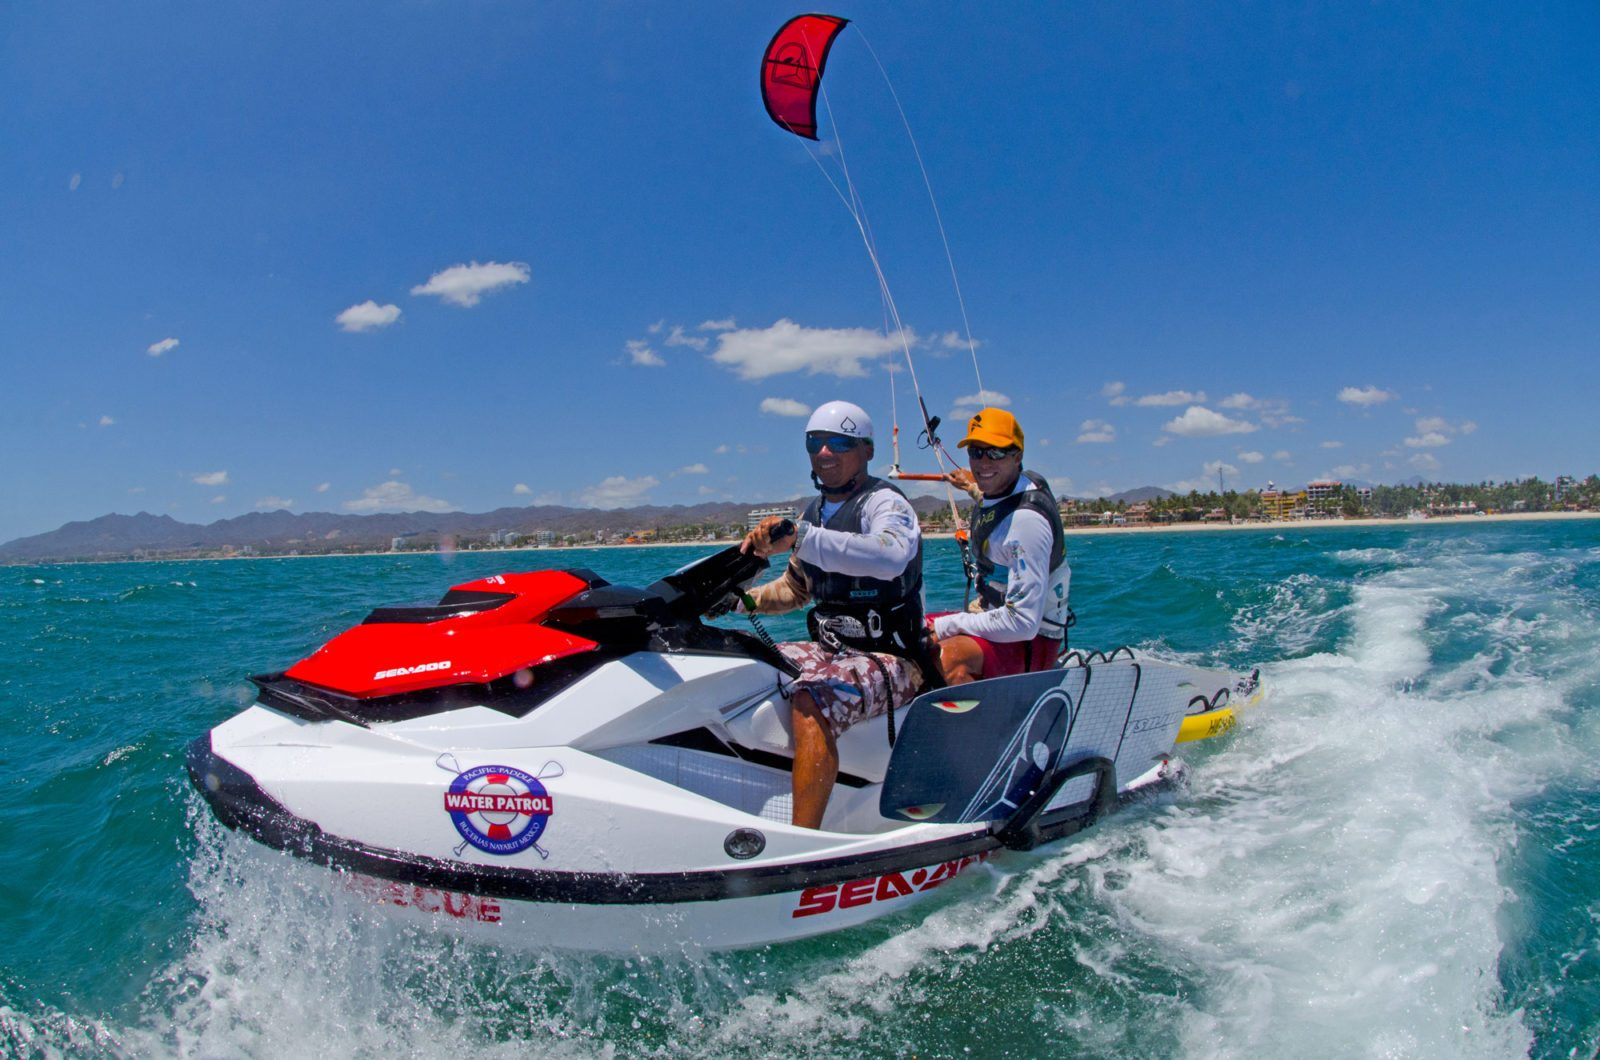 Kite-boarding-jet-ski-assisted-surf-mexico-kite-school-zero-to-hero